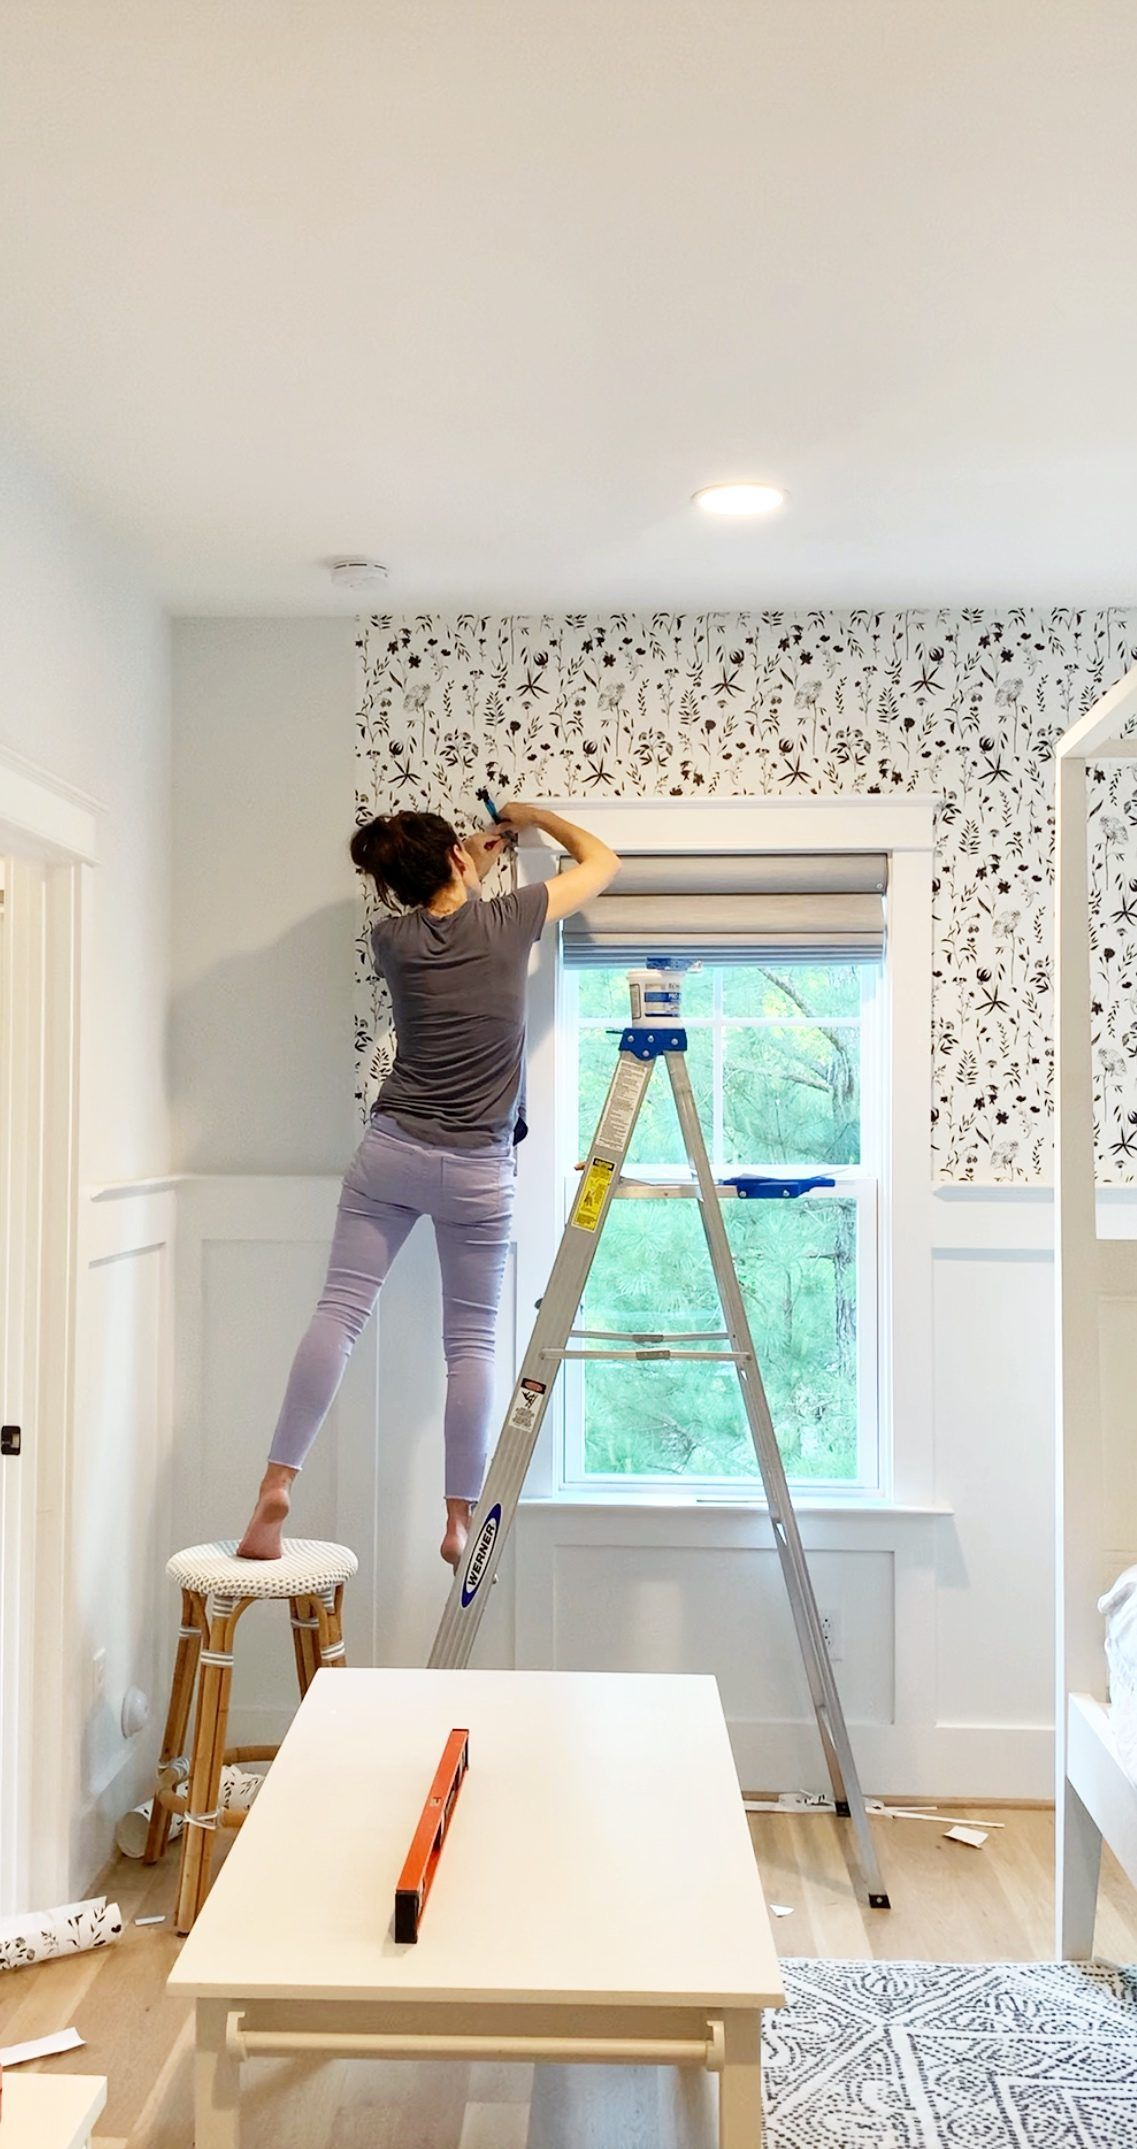 How To Hang Wallpaper For Total Beginners How To Hang Wallpaper How To Install Wallpaper Diy Wallpaper